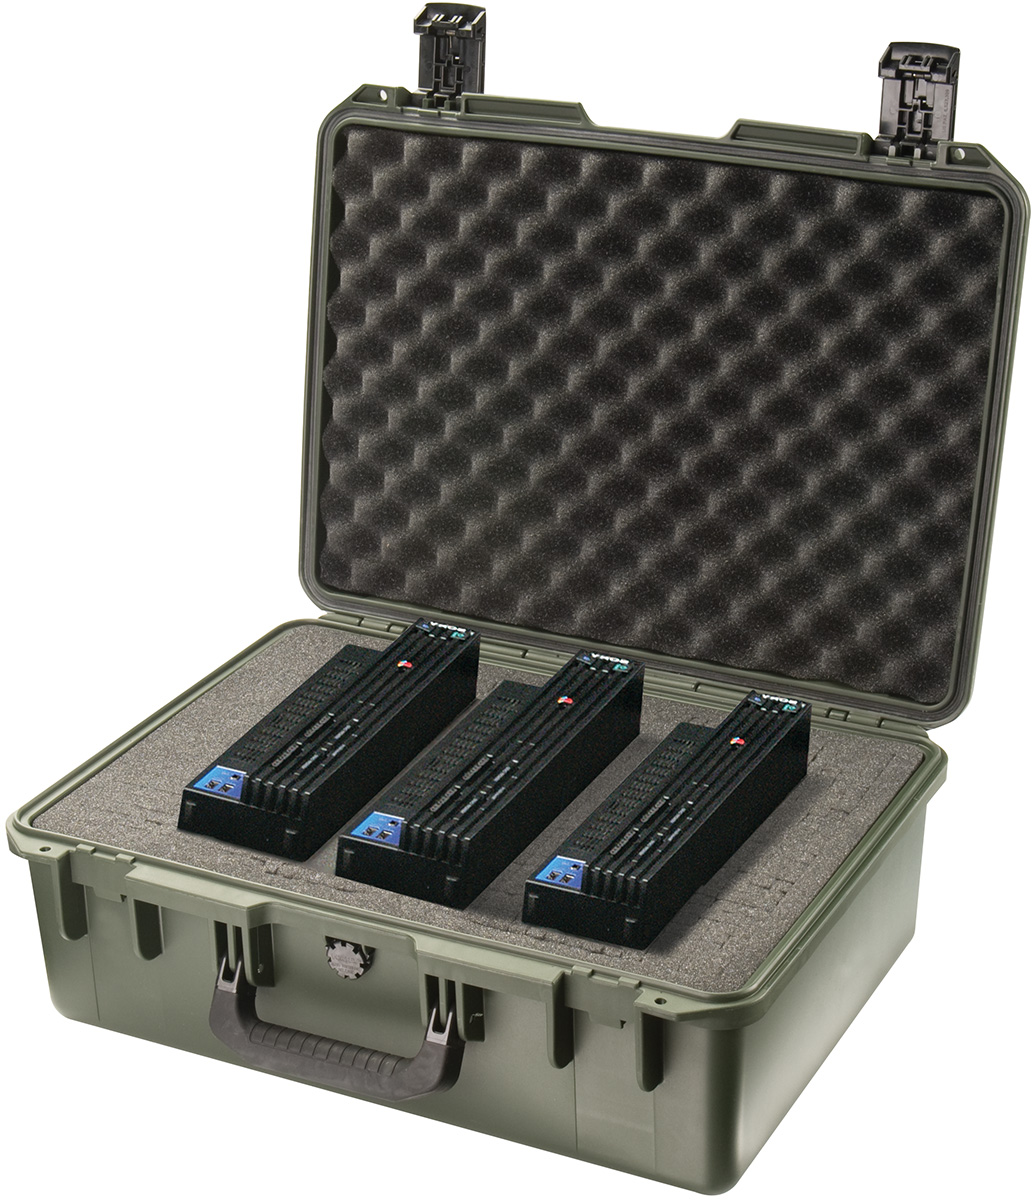 pelican peli products iM2600 storm watertight electronics case hardigg hardcase